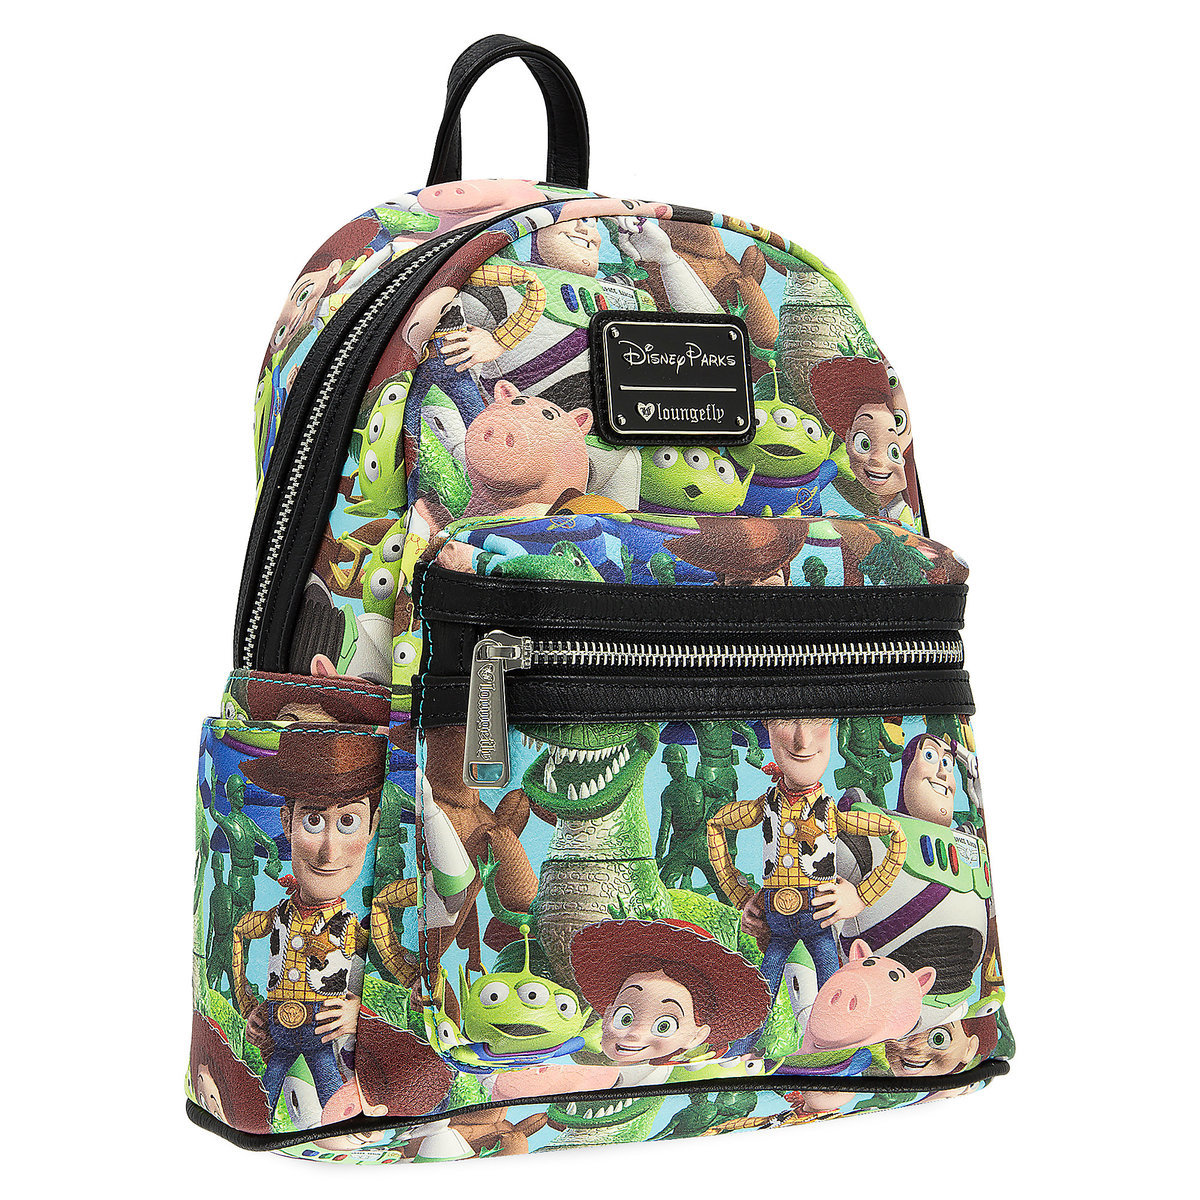 140833cf305 Disney Parks Mini Backpack - Toy Story Character Fun by Loungefly